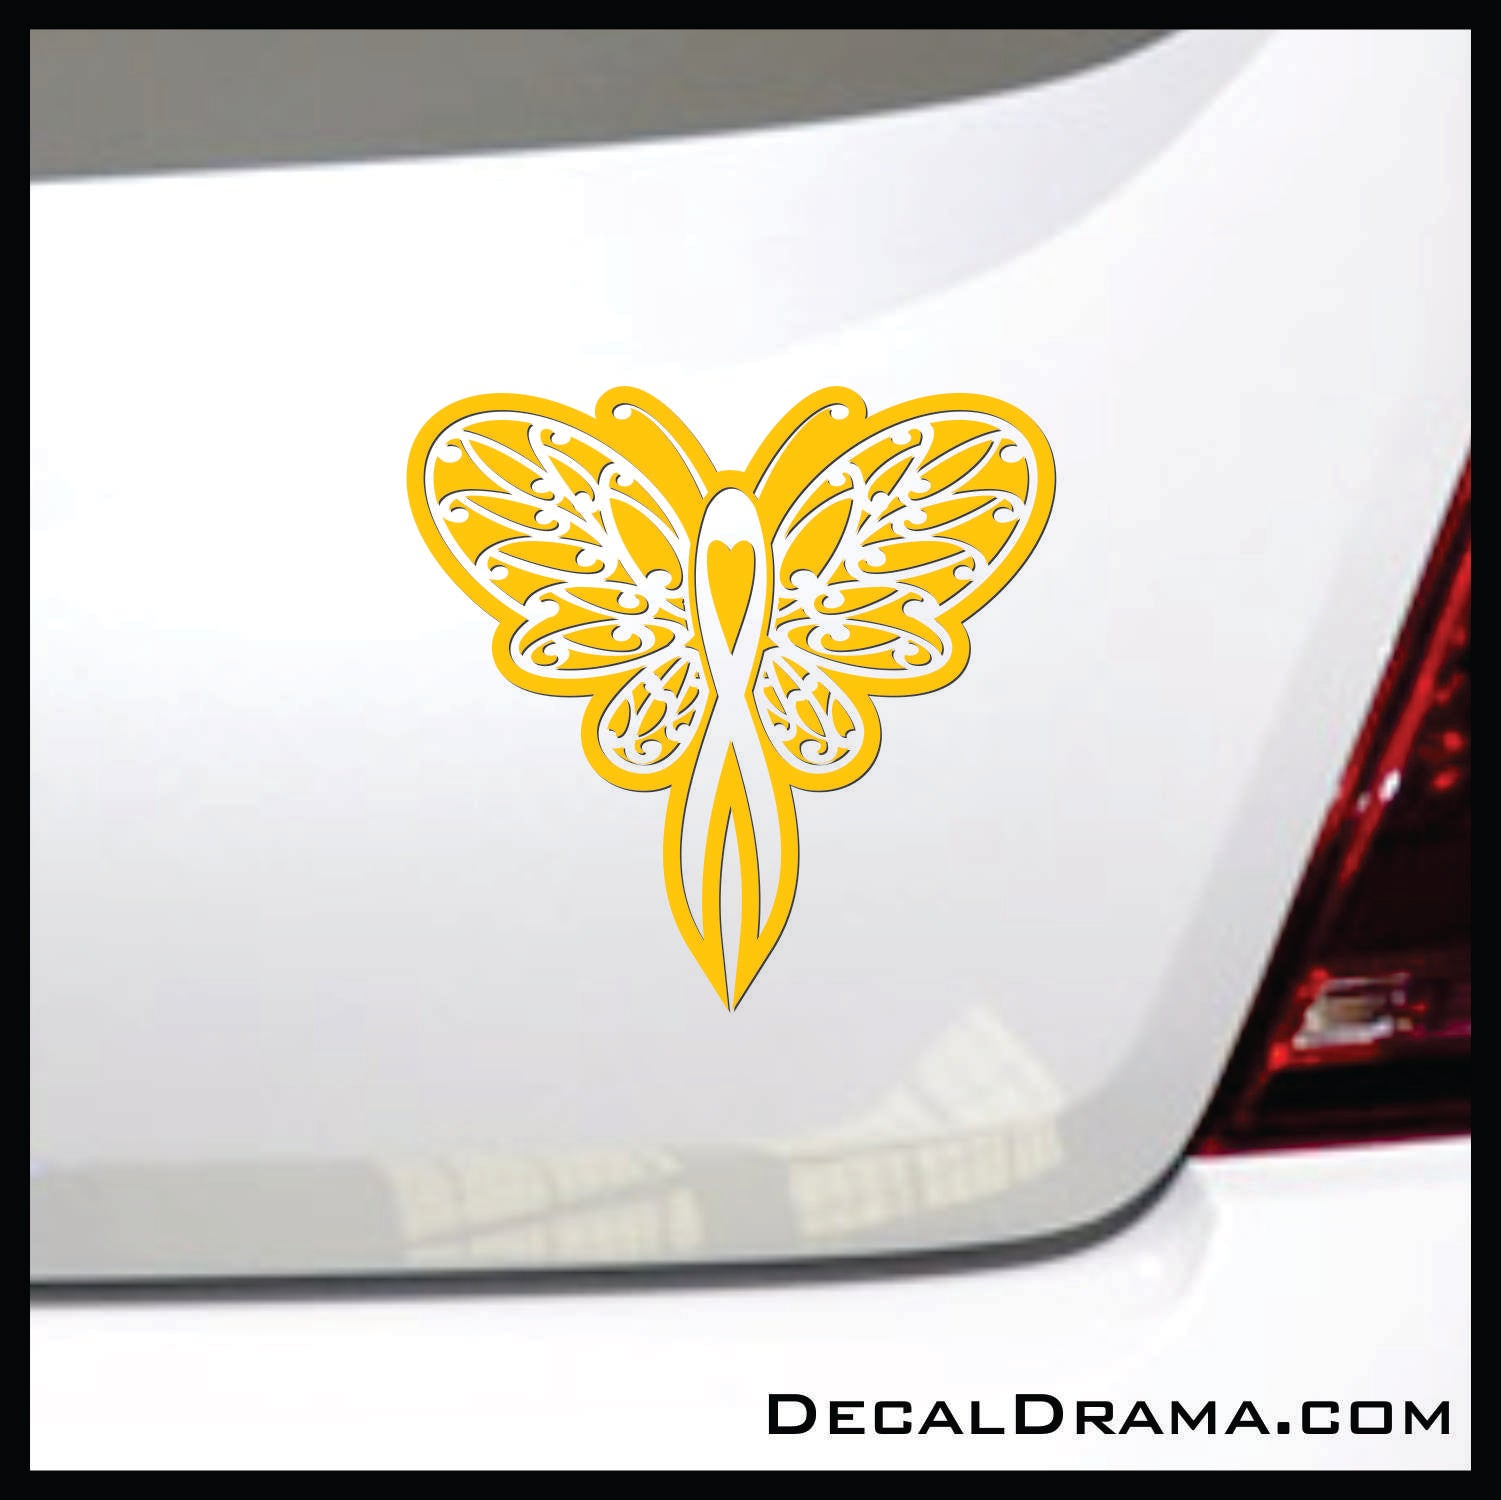 Awareness Ribbon Butterfly Lace Vinyl Car/Laptop Decal